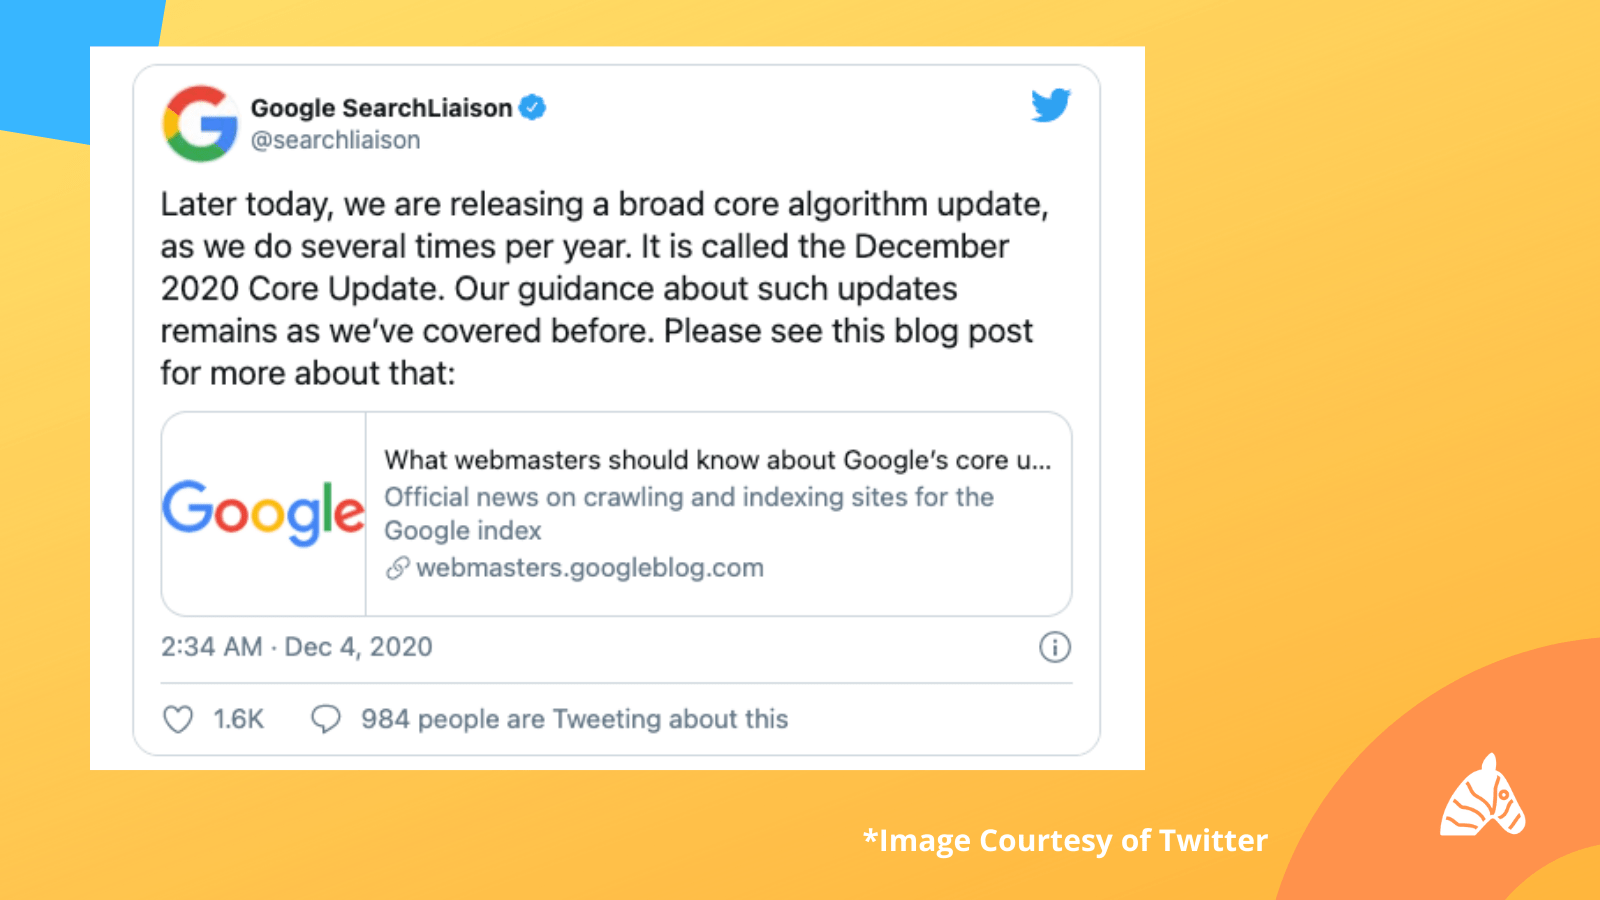 Google Search Liaison Tweet about december 2020 core update